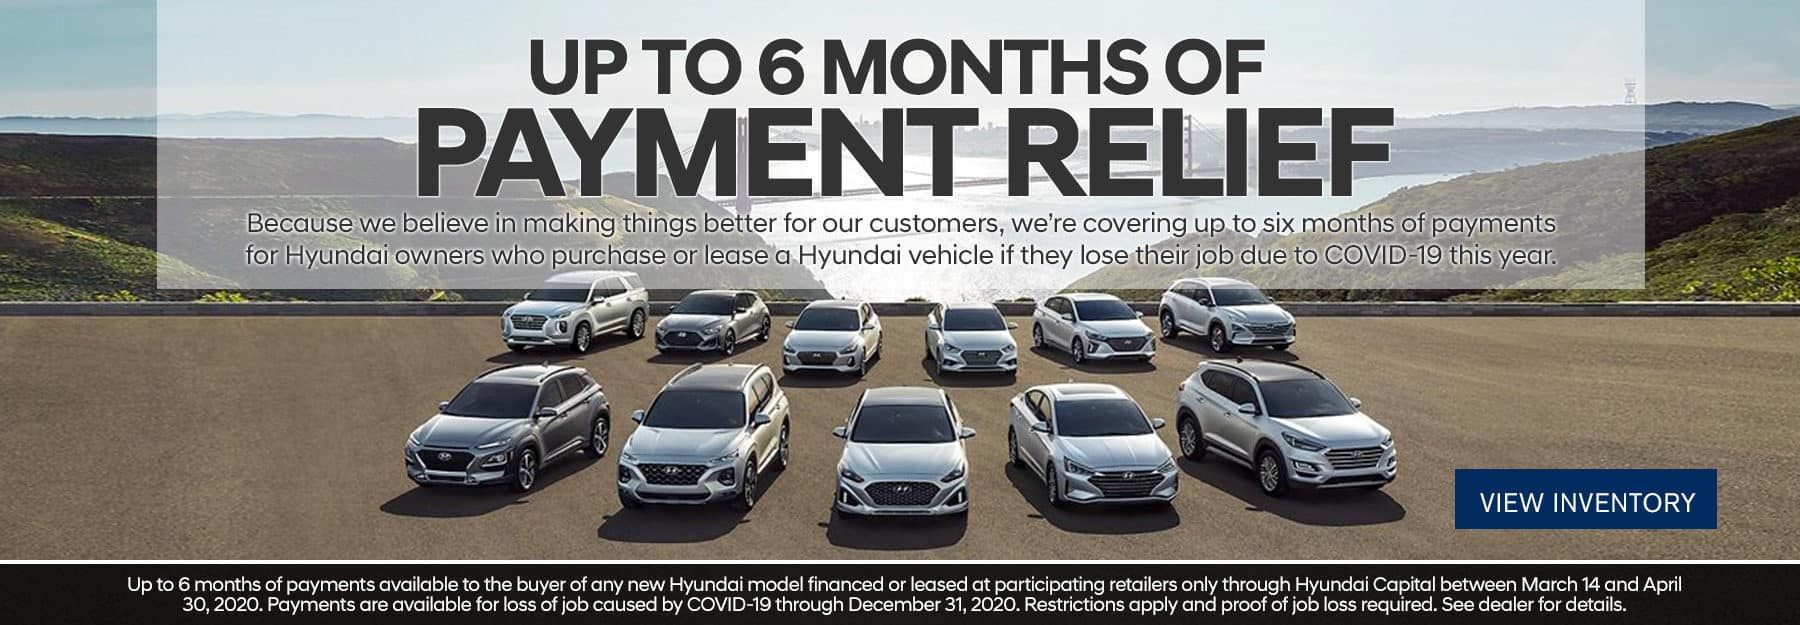 Make No Payments for New Hyundai Models Jacksonville FL